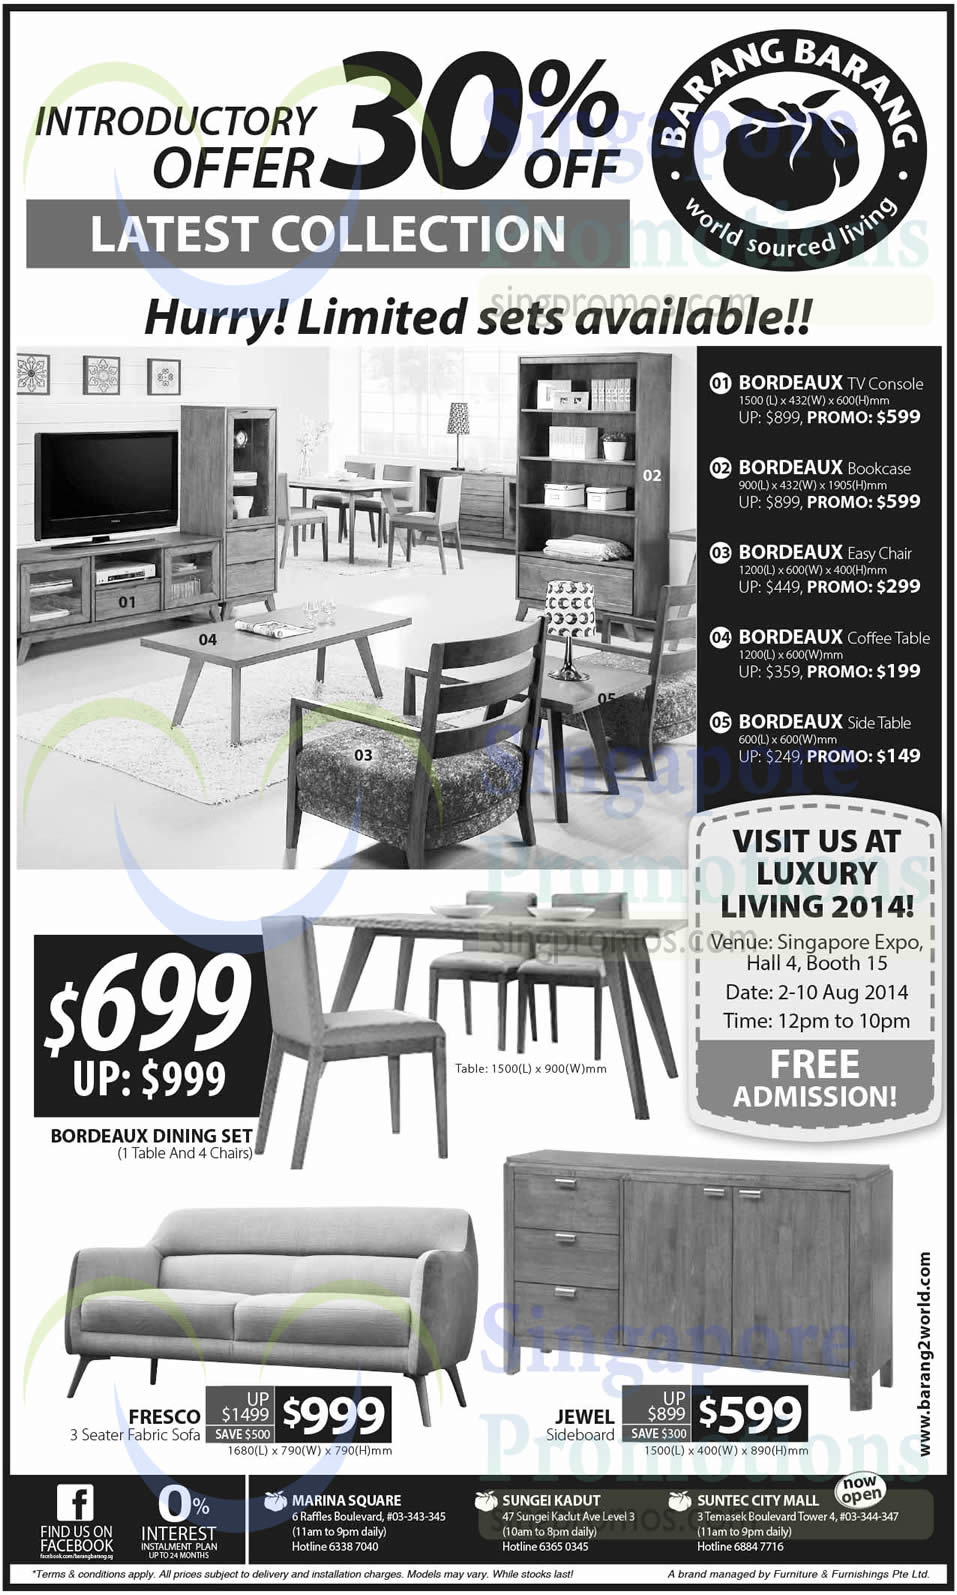 2 Aug Barang Barang Furniture Offers Luxury Living 2014 Singapore Expo 2